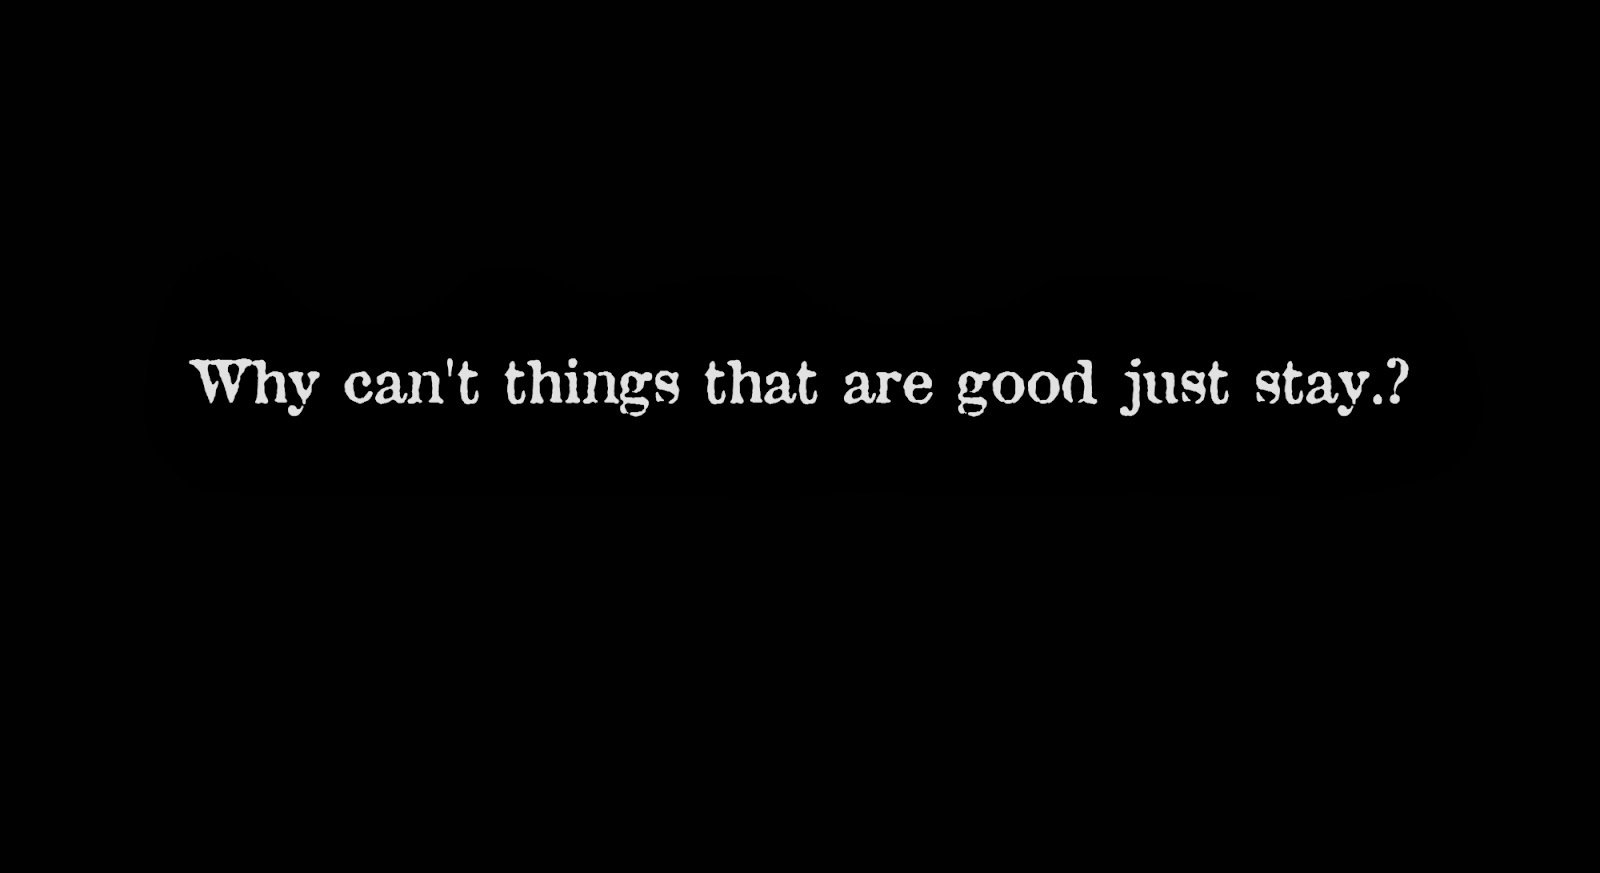 Why can't things that are good just stay.?